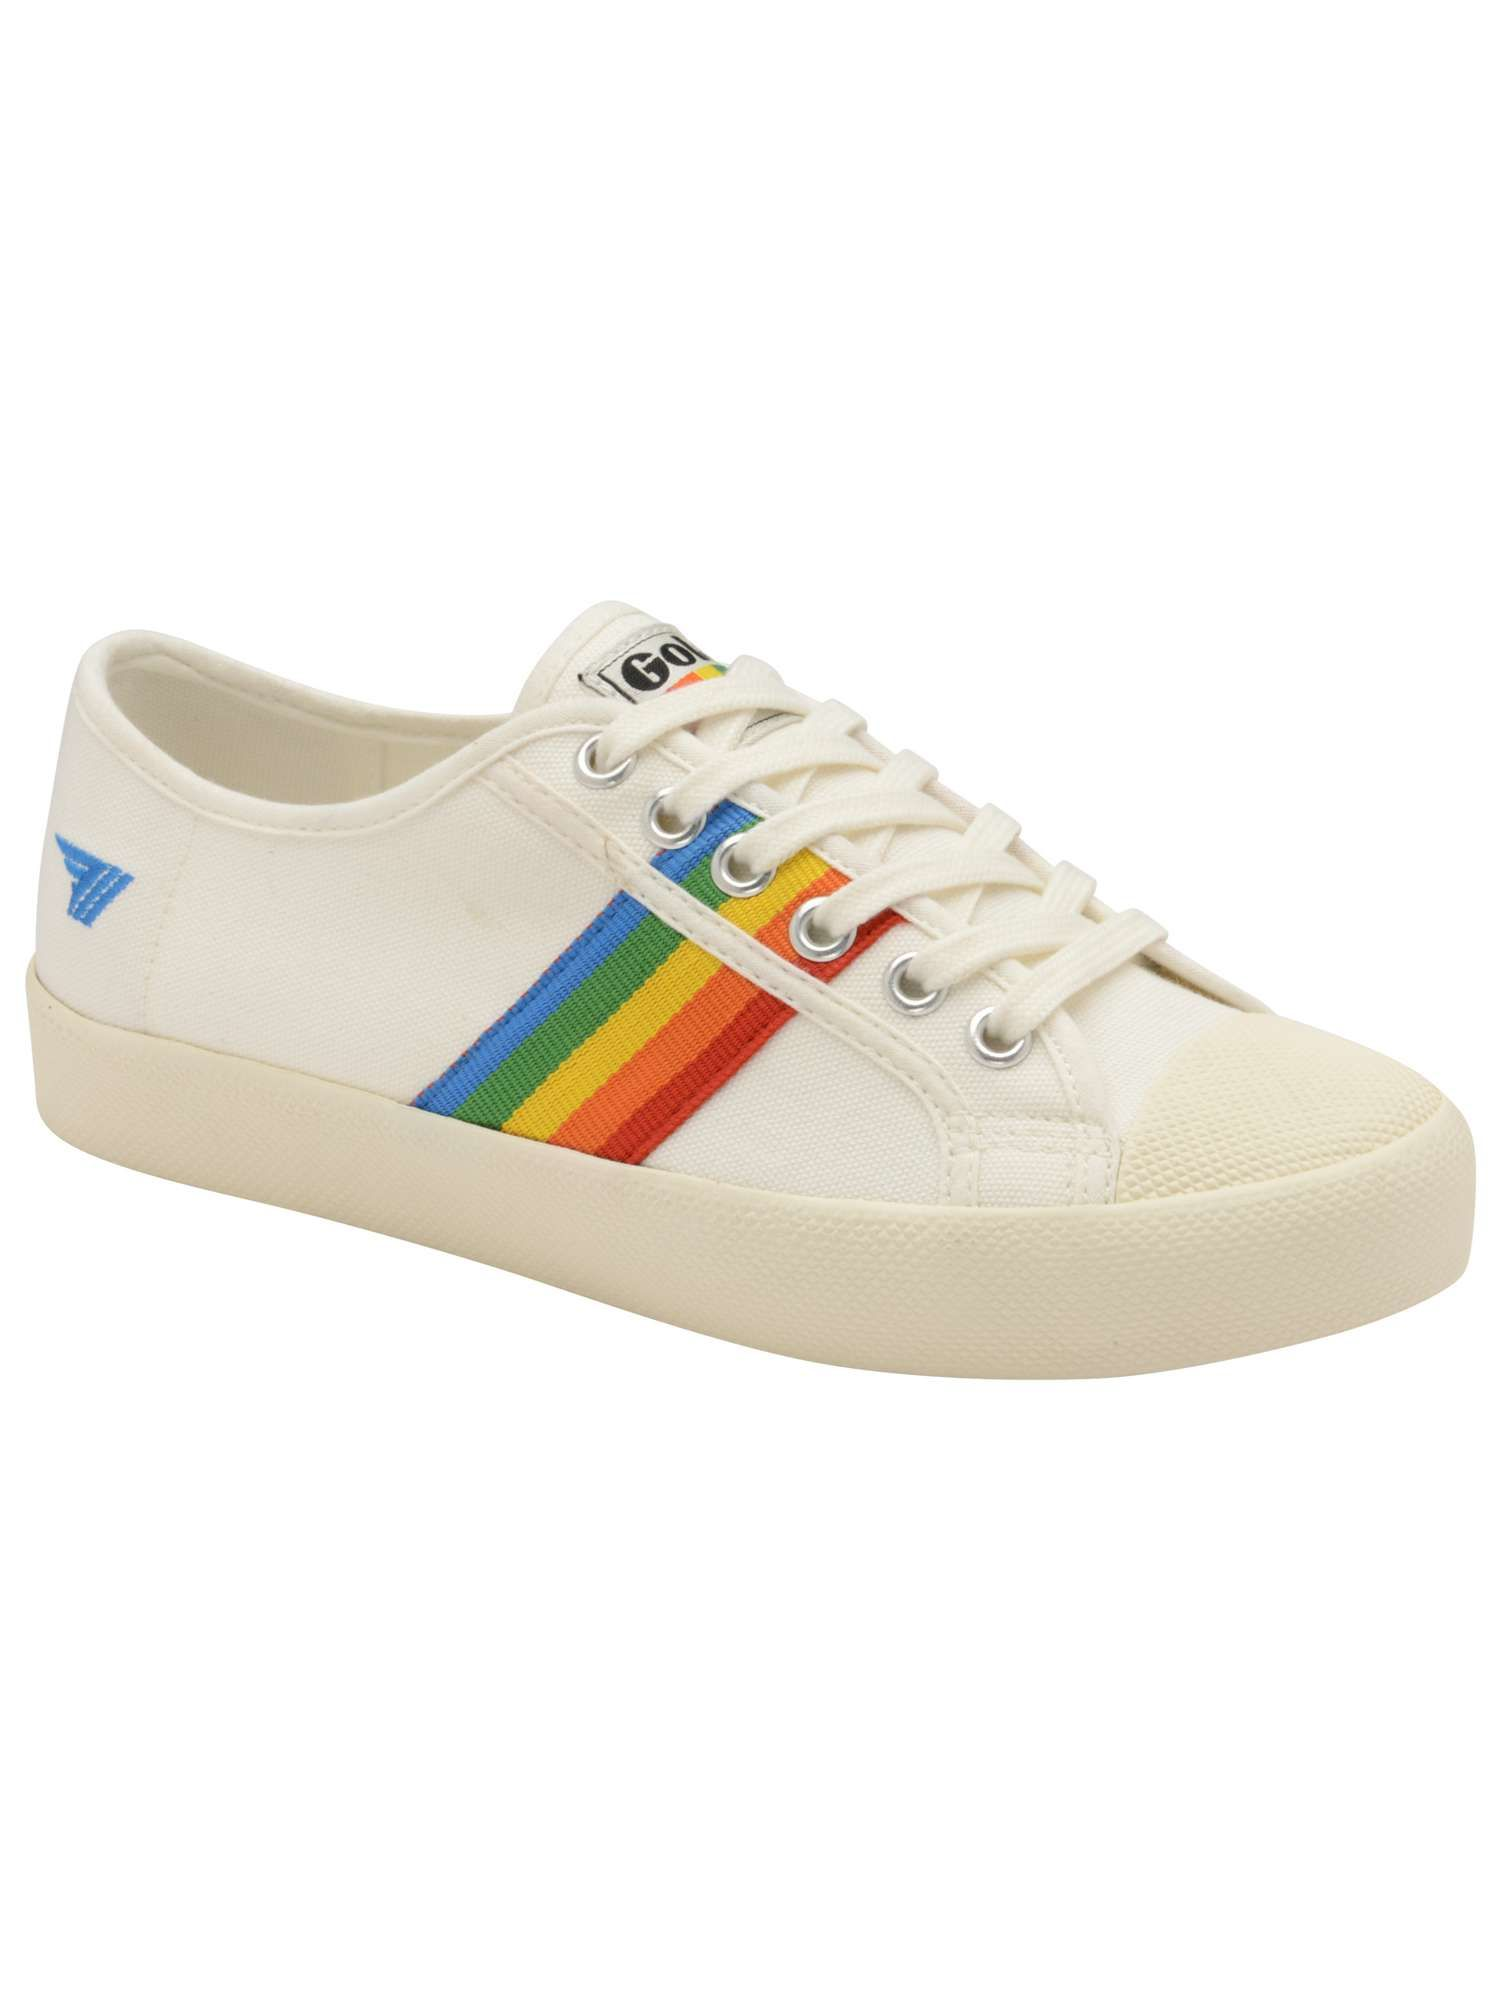 578d8a4ad47e41 Gola Coaster Rainbow Lace Up Trainers - House of Fraser